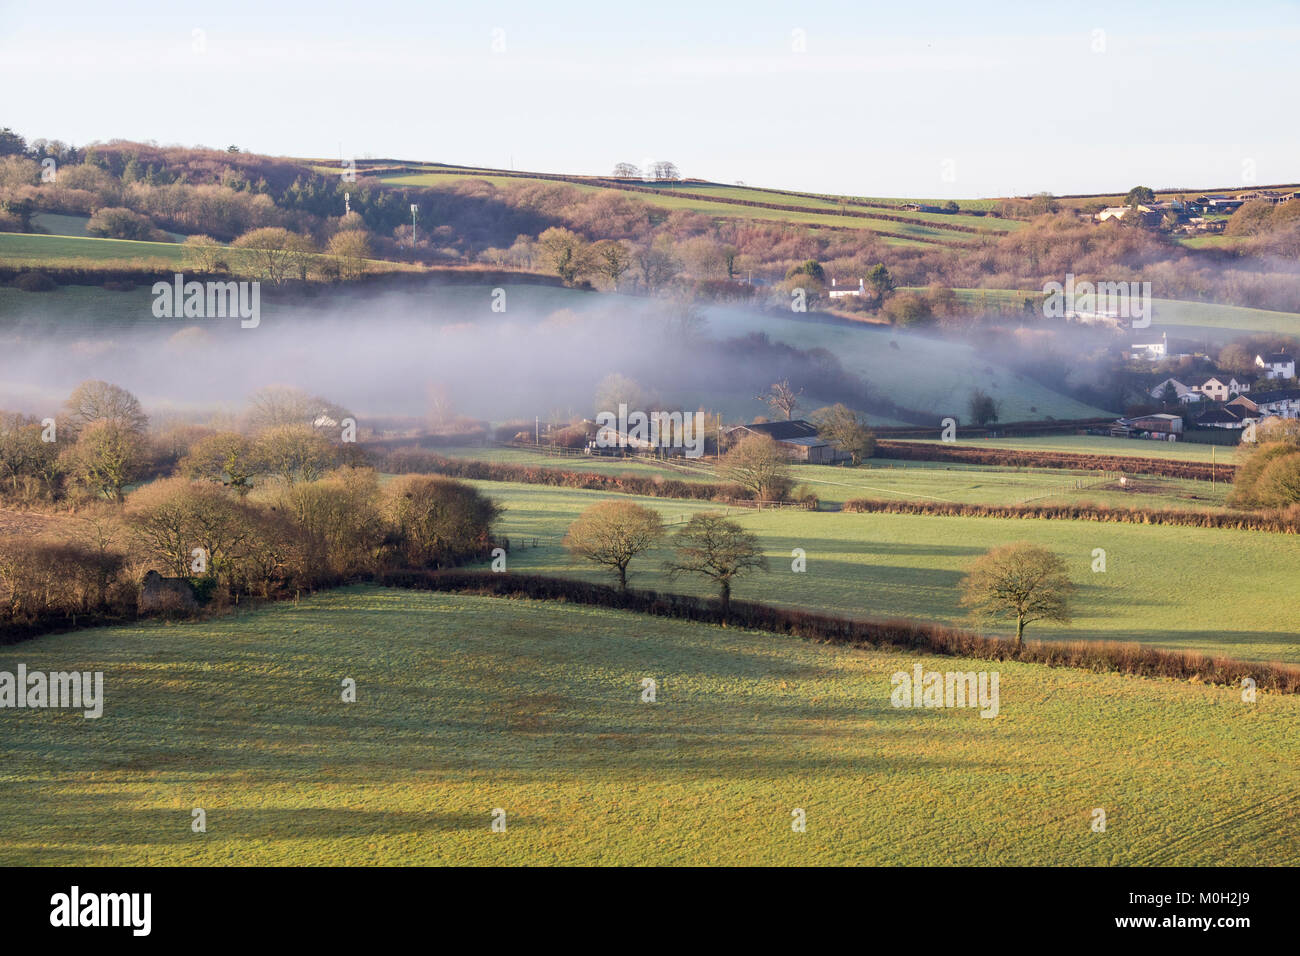 Misty Torridge Valley View: Looking from Torrington Across the River Valley Towards Taddiport, With Shadows and - Stock Image